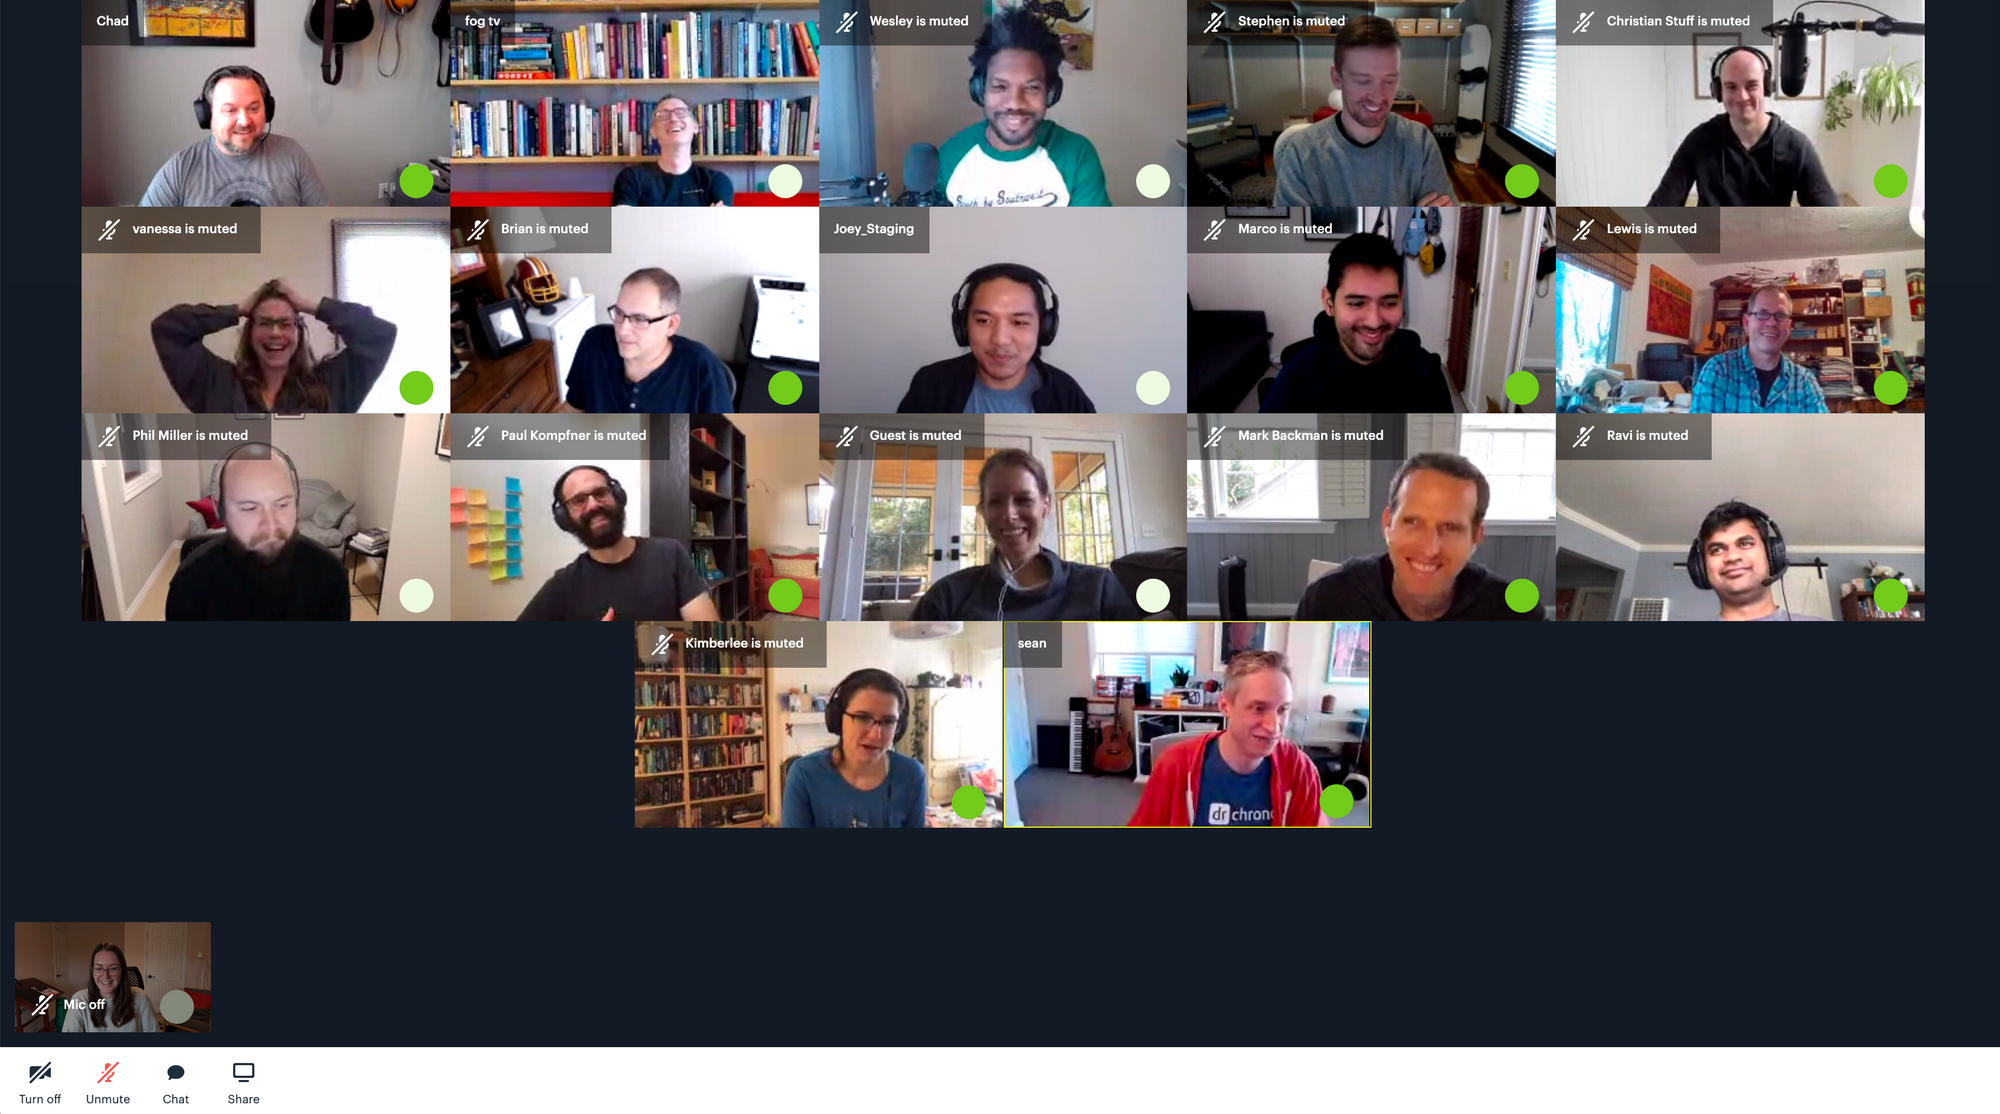 Video call with green dots demonstrates who is speaking